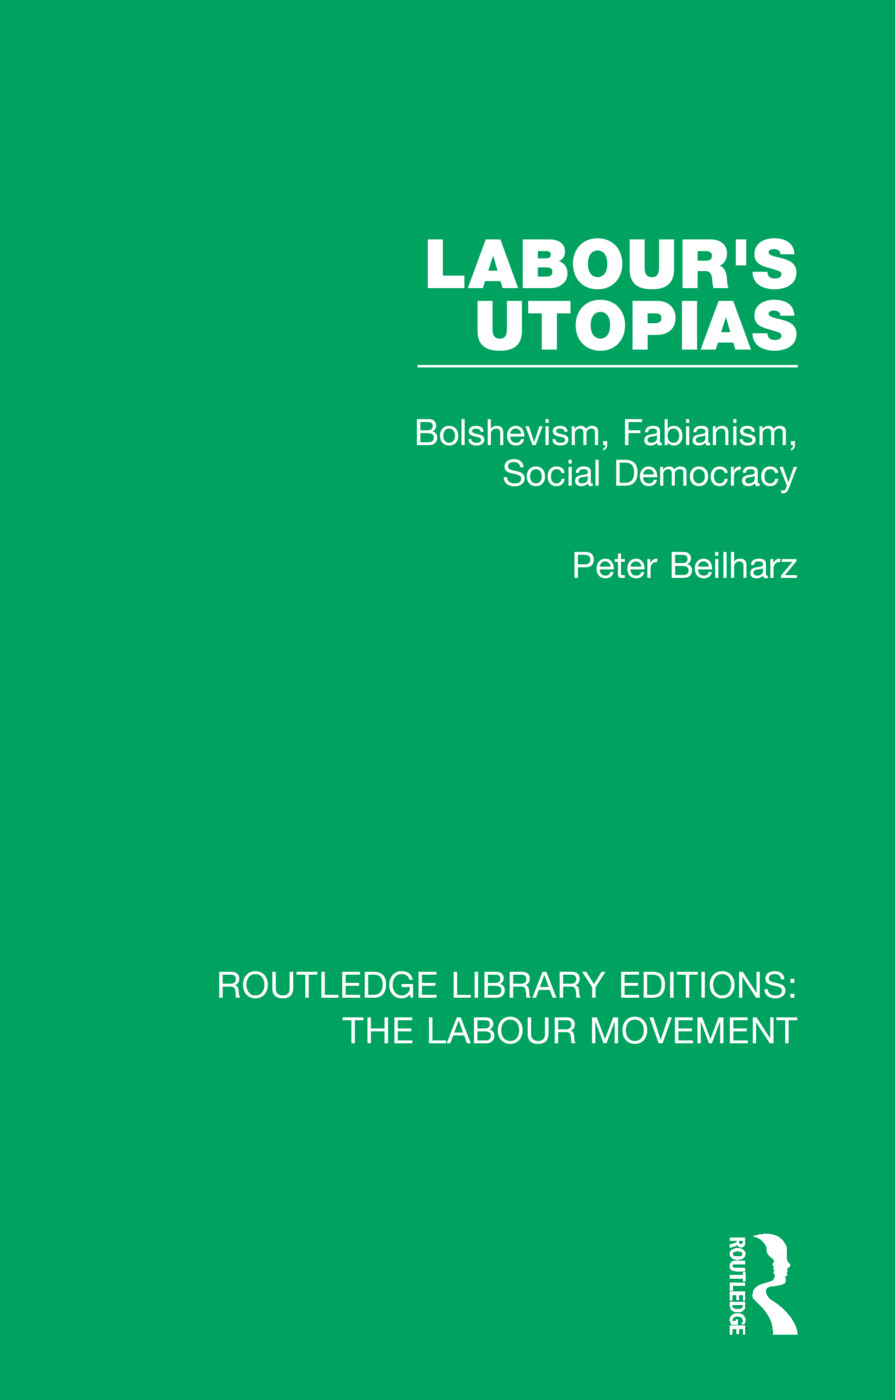 Labour's Utopias: Bolshevism, Fabianism, Social Democracy book cover